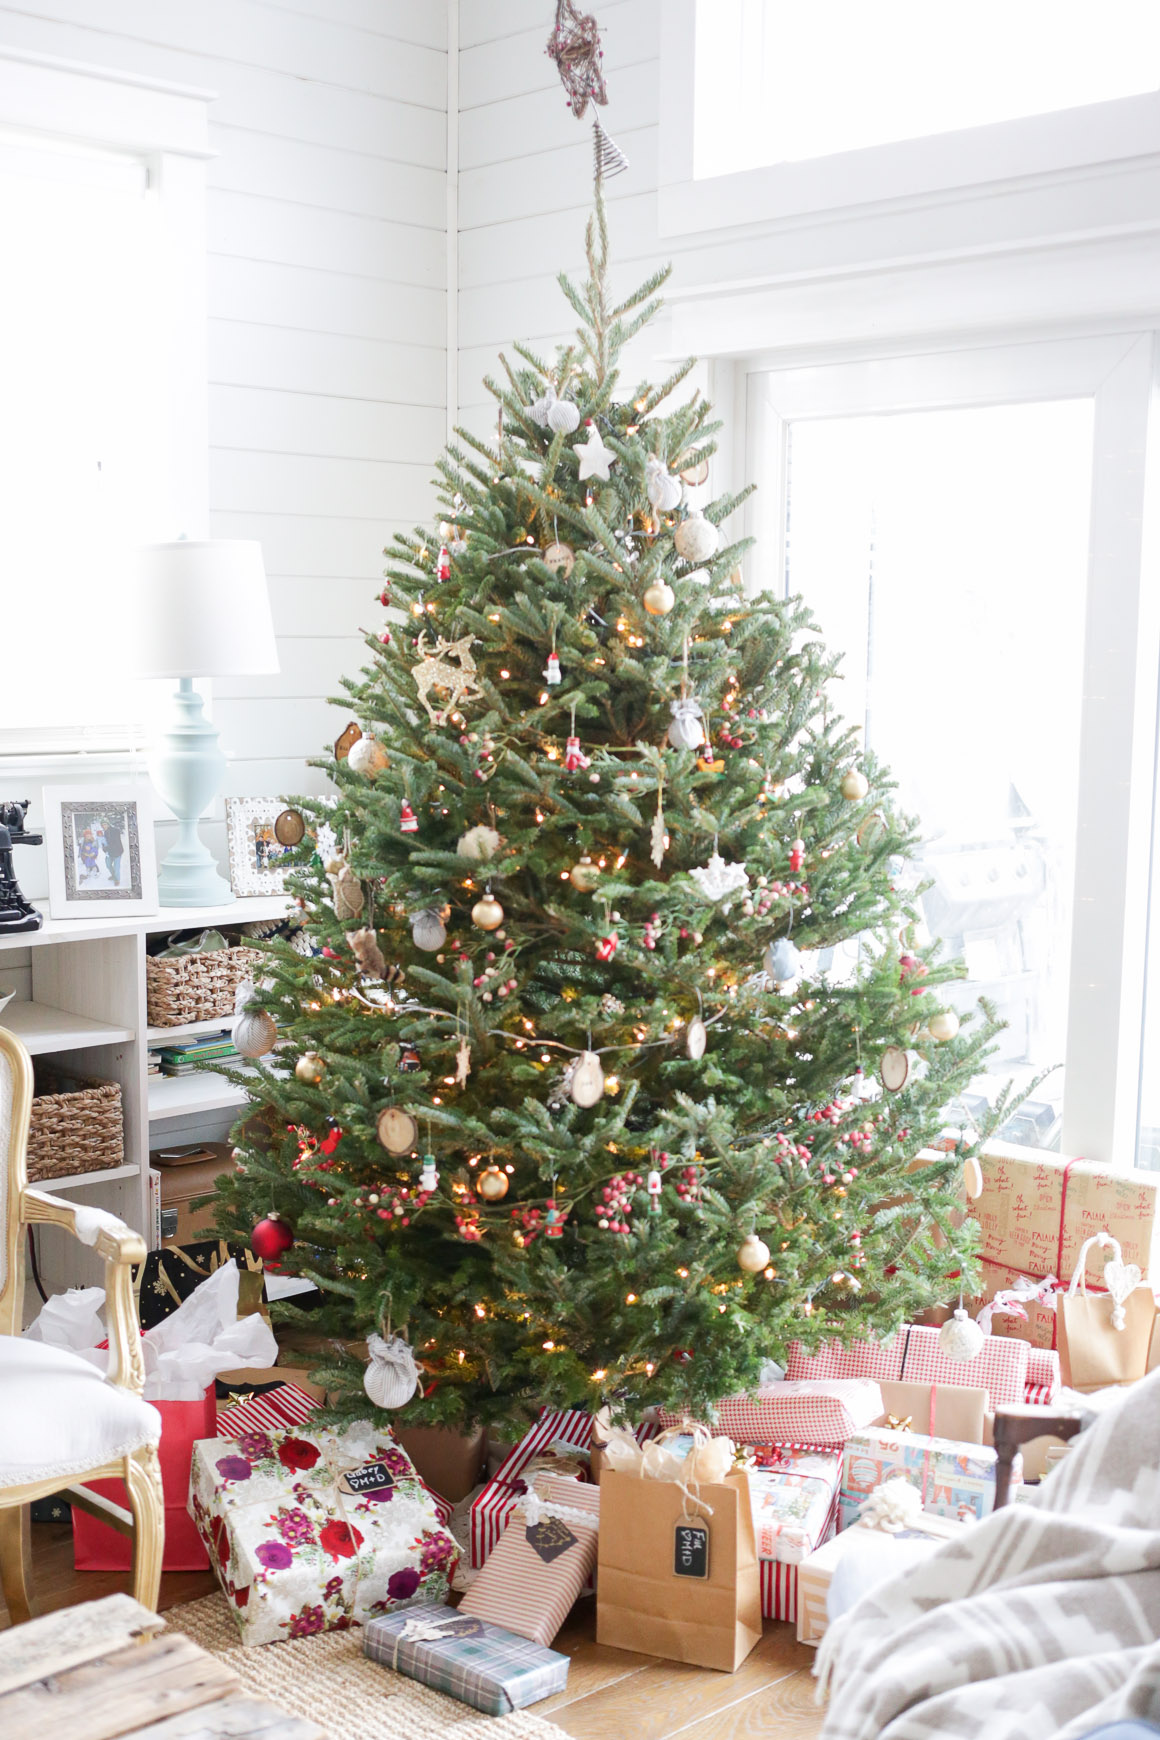 Step inside this Cozy Cottage Living Room, all prettied up for Christmas | This Mamas Dance